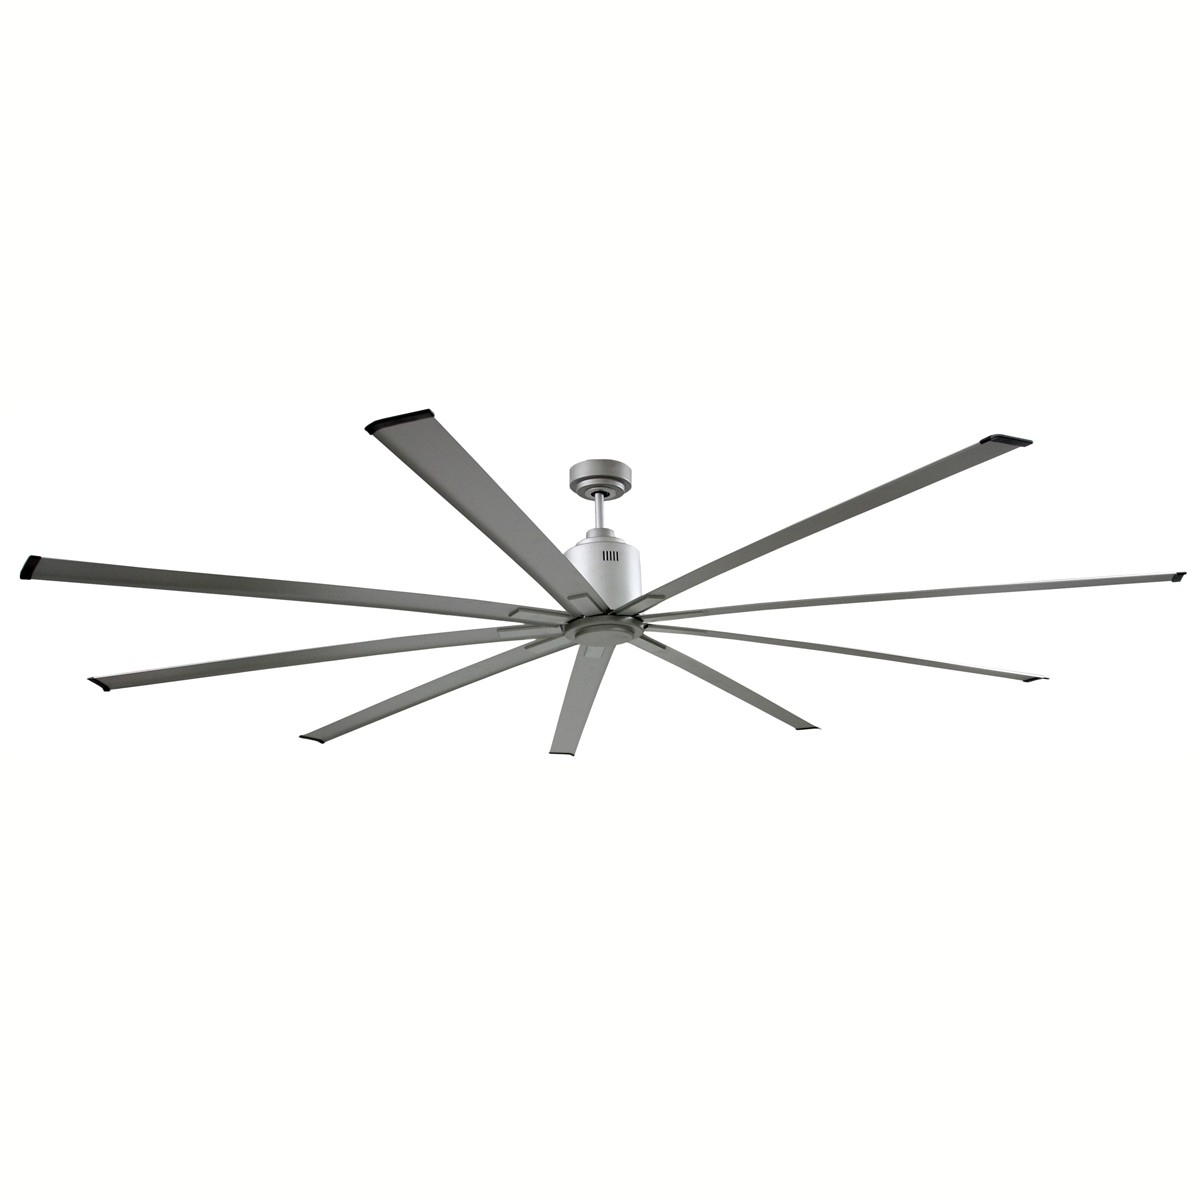 72 Inch Outdoor Ceiling Fans Intended For Trendy 72 Inch Indoor Industrial Ceiling Fan (View 7 of 20)